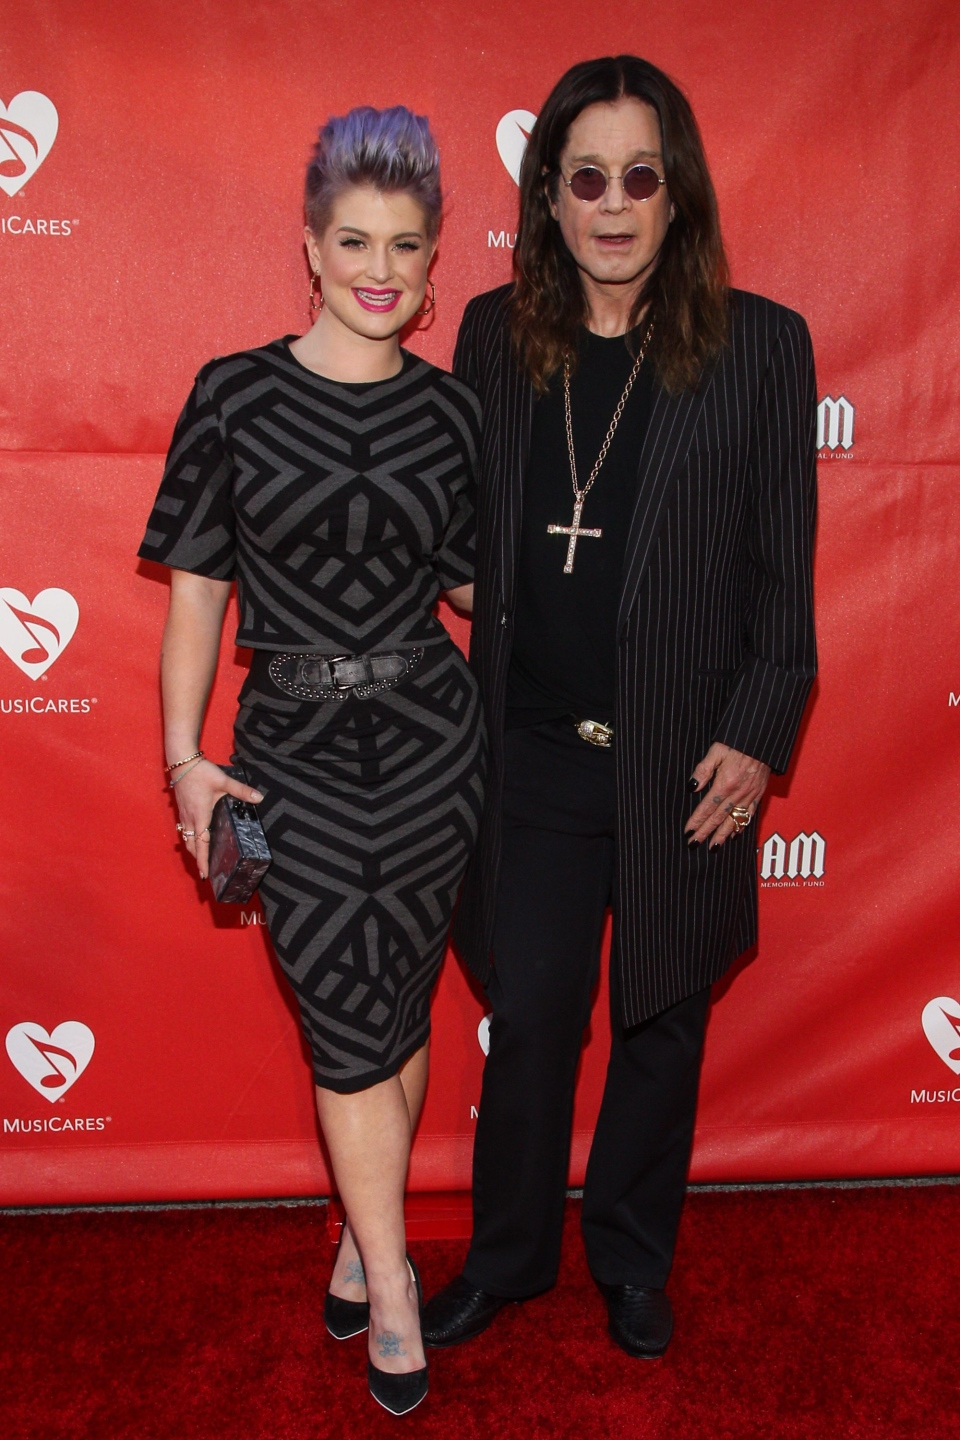 Kelly Osborne, left, and Ozzy Osbourne attend the 10th annual MusiCares MAP Fund Benefit Concert at Club Nokia on May 12, 2014 in Los Angeles. (Paul A. Hebert / Invision / AP)